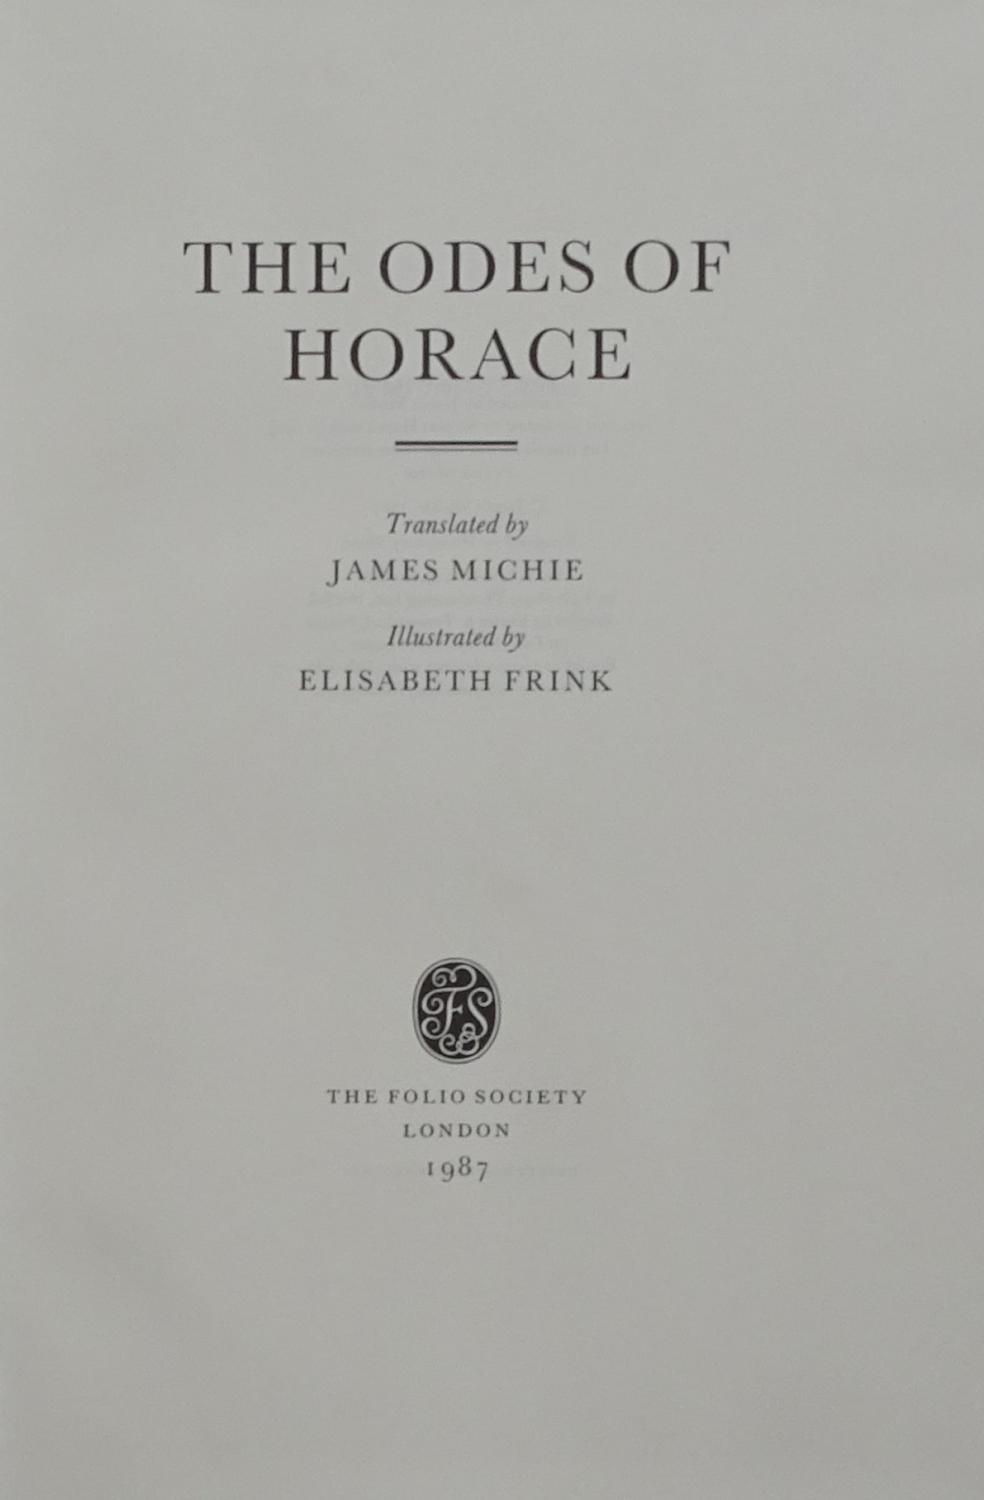 The Odes of Horace by Horace. Translated by James Michie